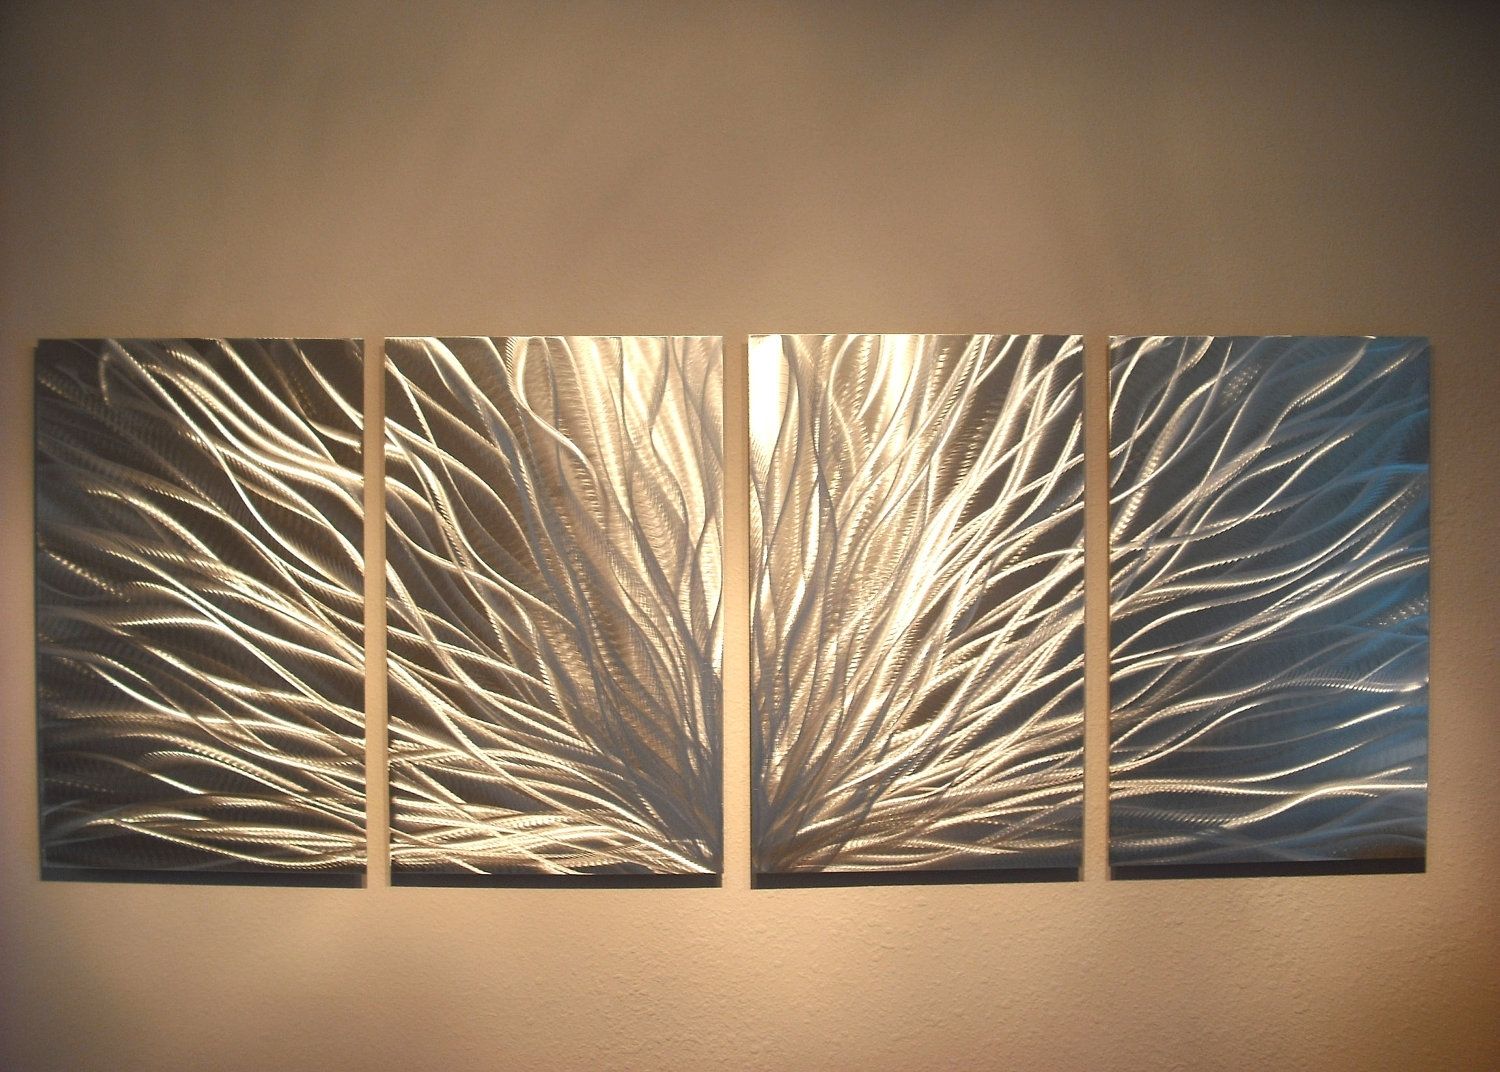 Radiance - Abstract Metal Wall Art Contemporary Modern Decor with regard to Large Metal Wall Art (Image 15 of 20)